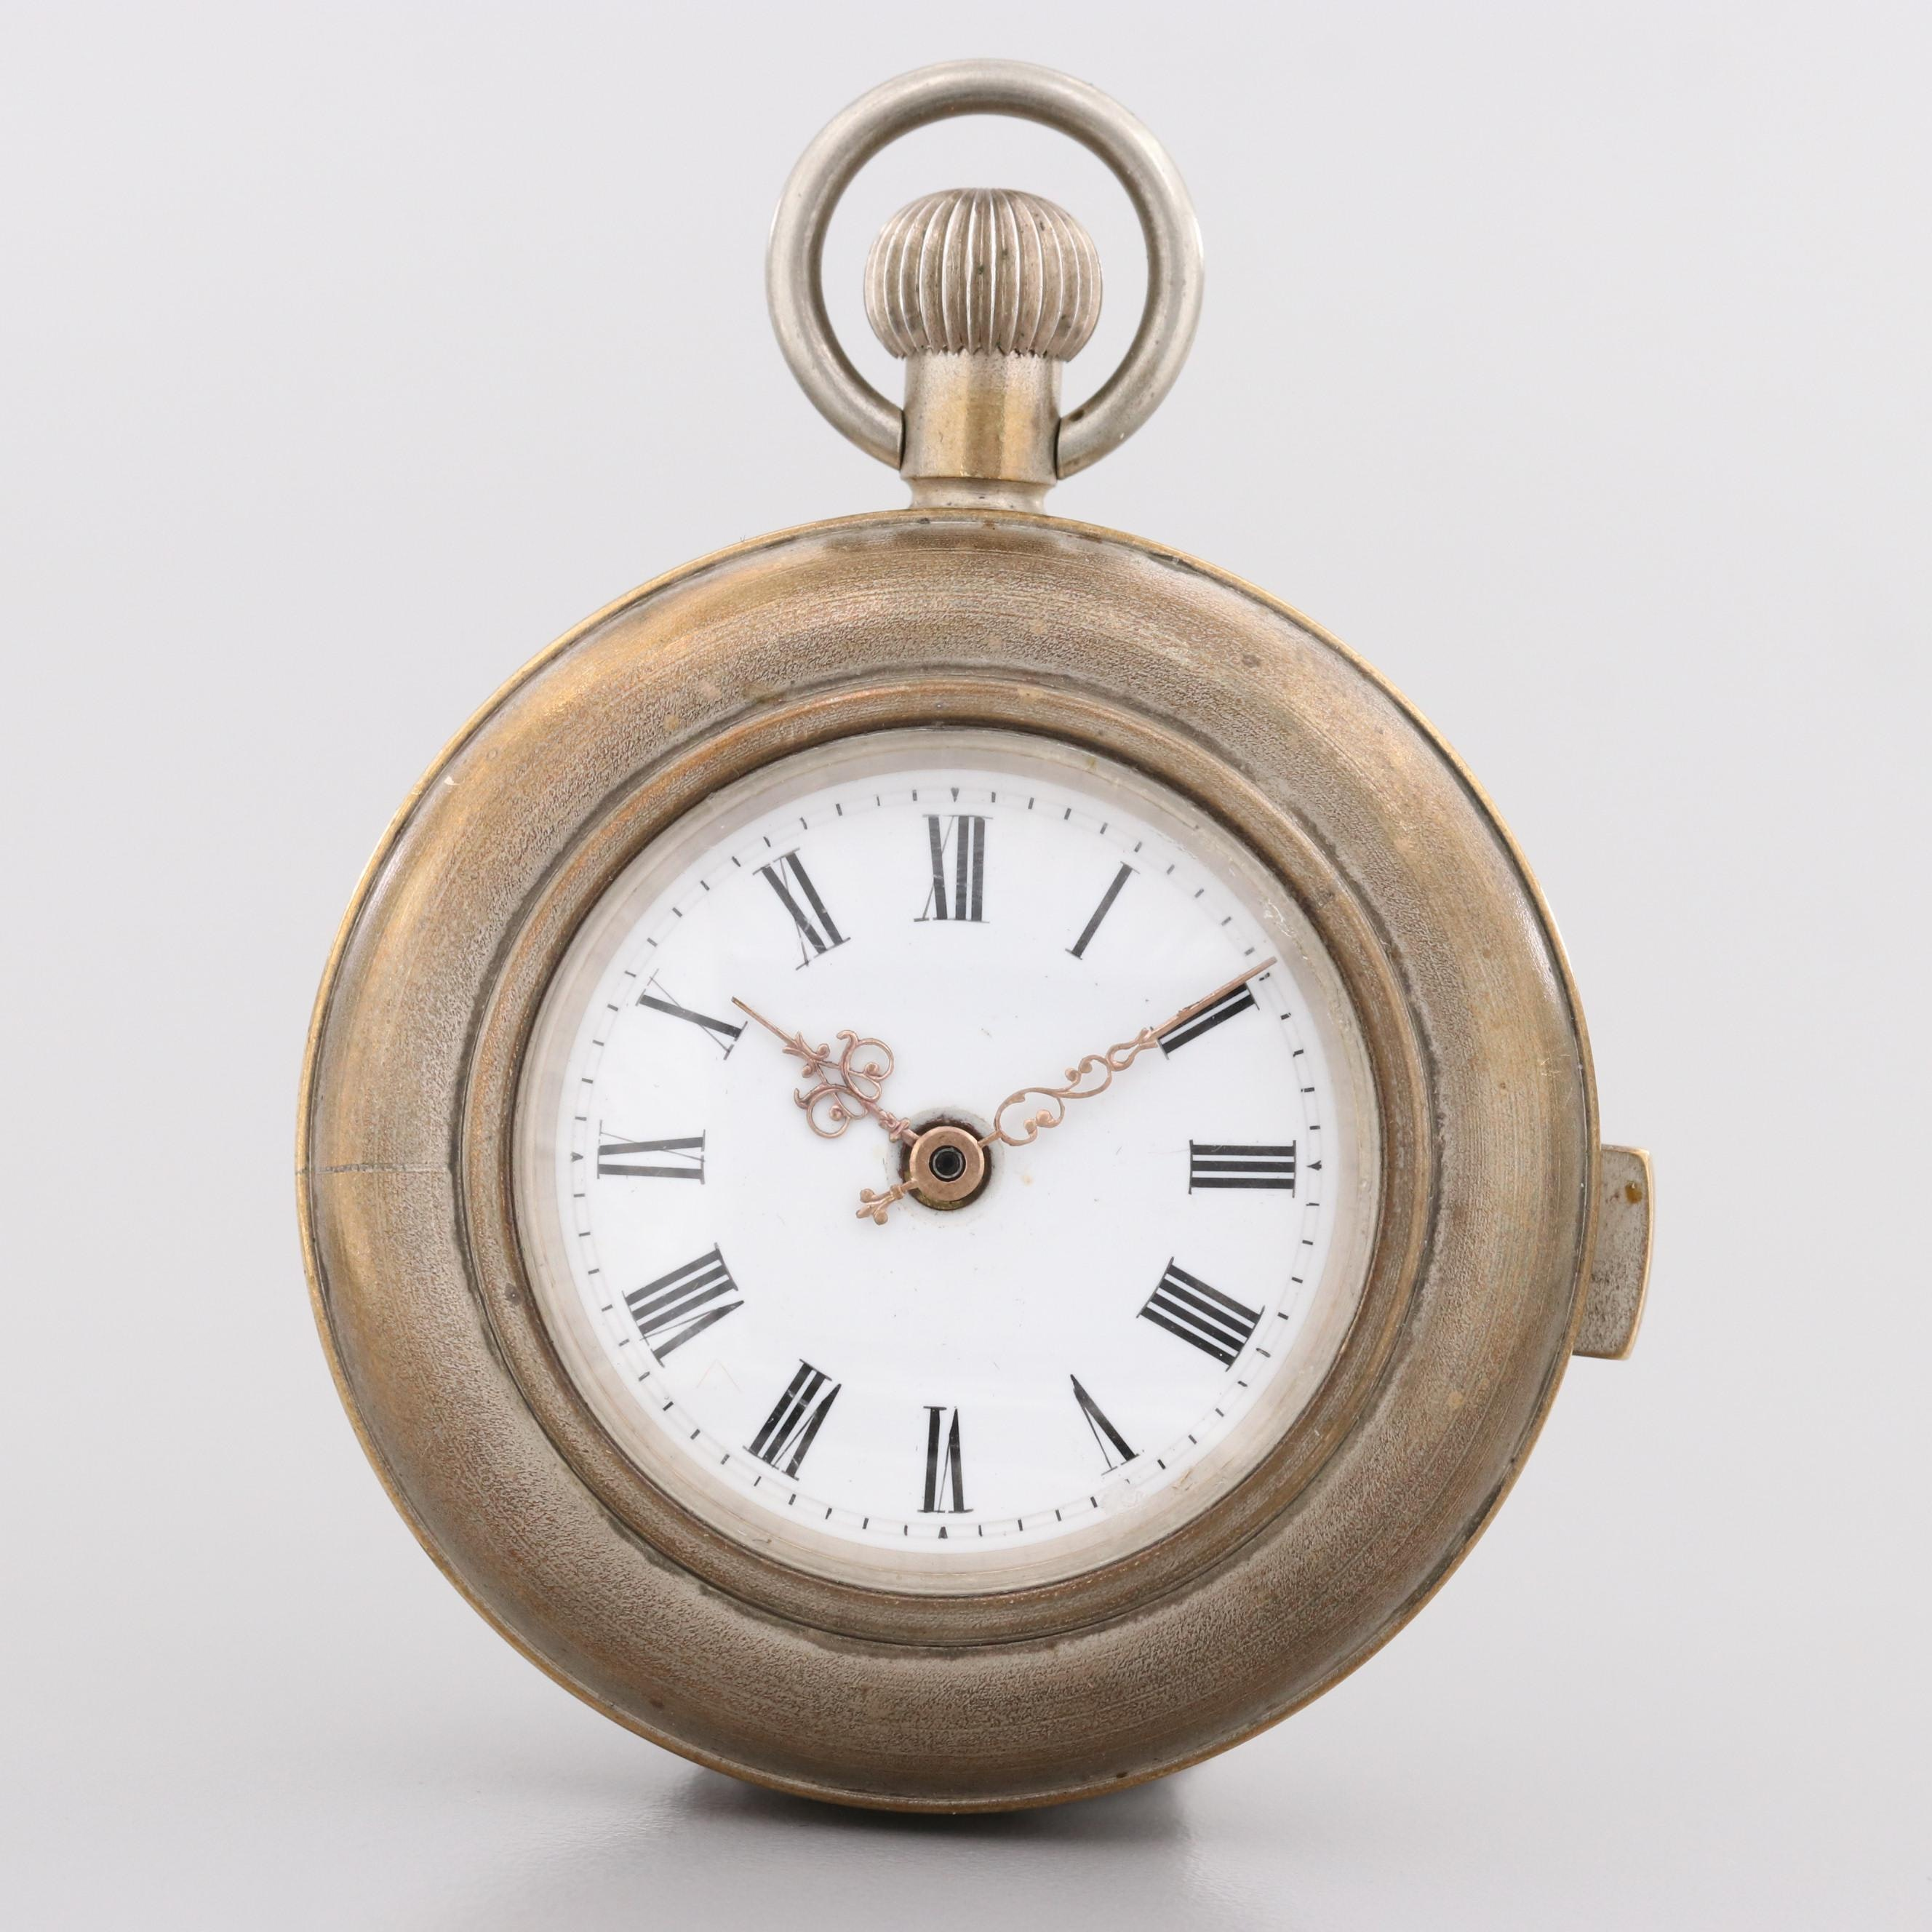 Swiss Quarter Hour Repeater Pocket Watch